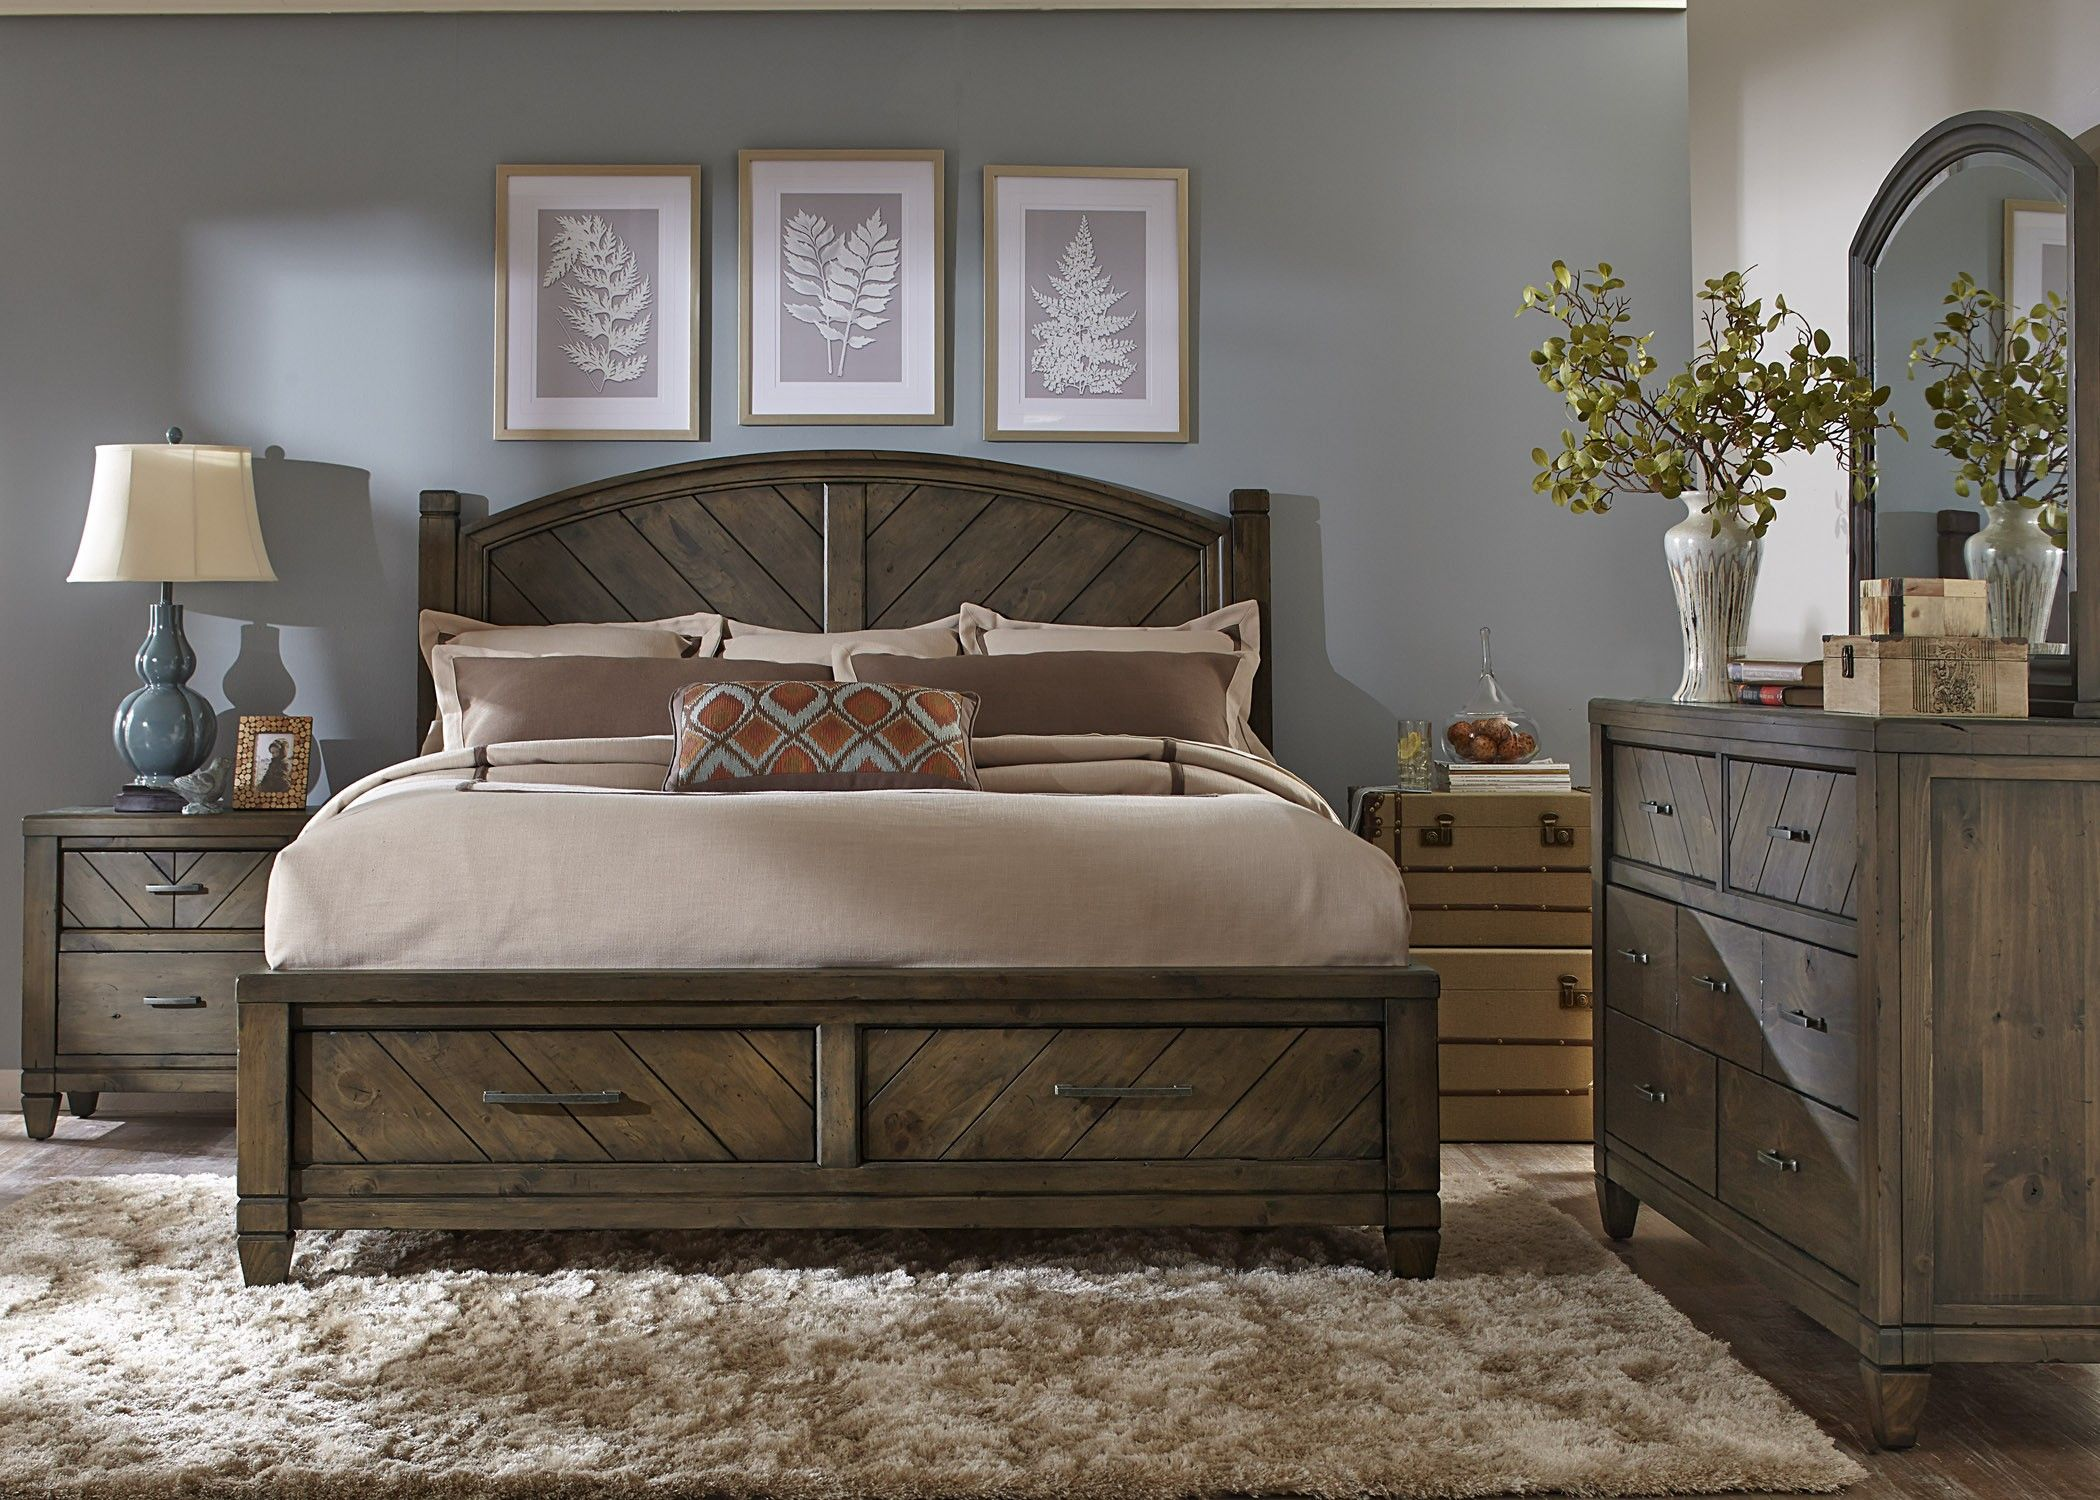 Modern Country Bedroom Set | Modern country bedrooms ...